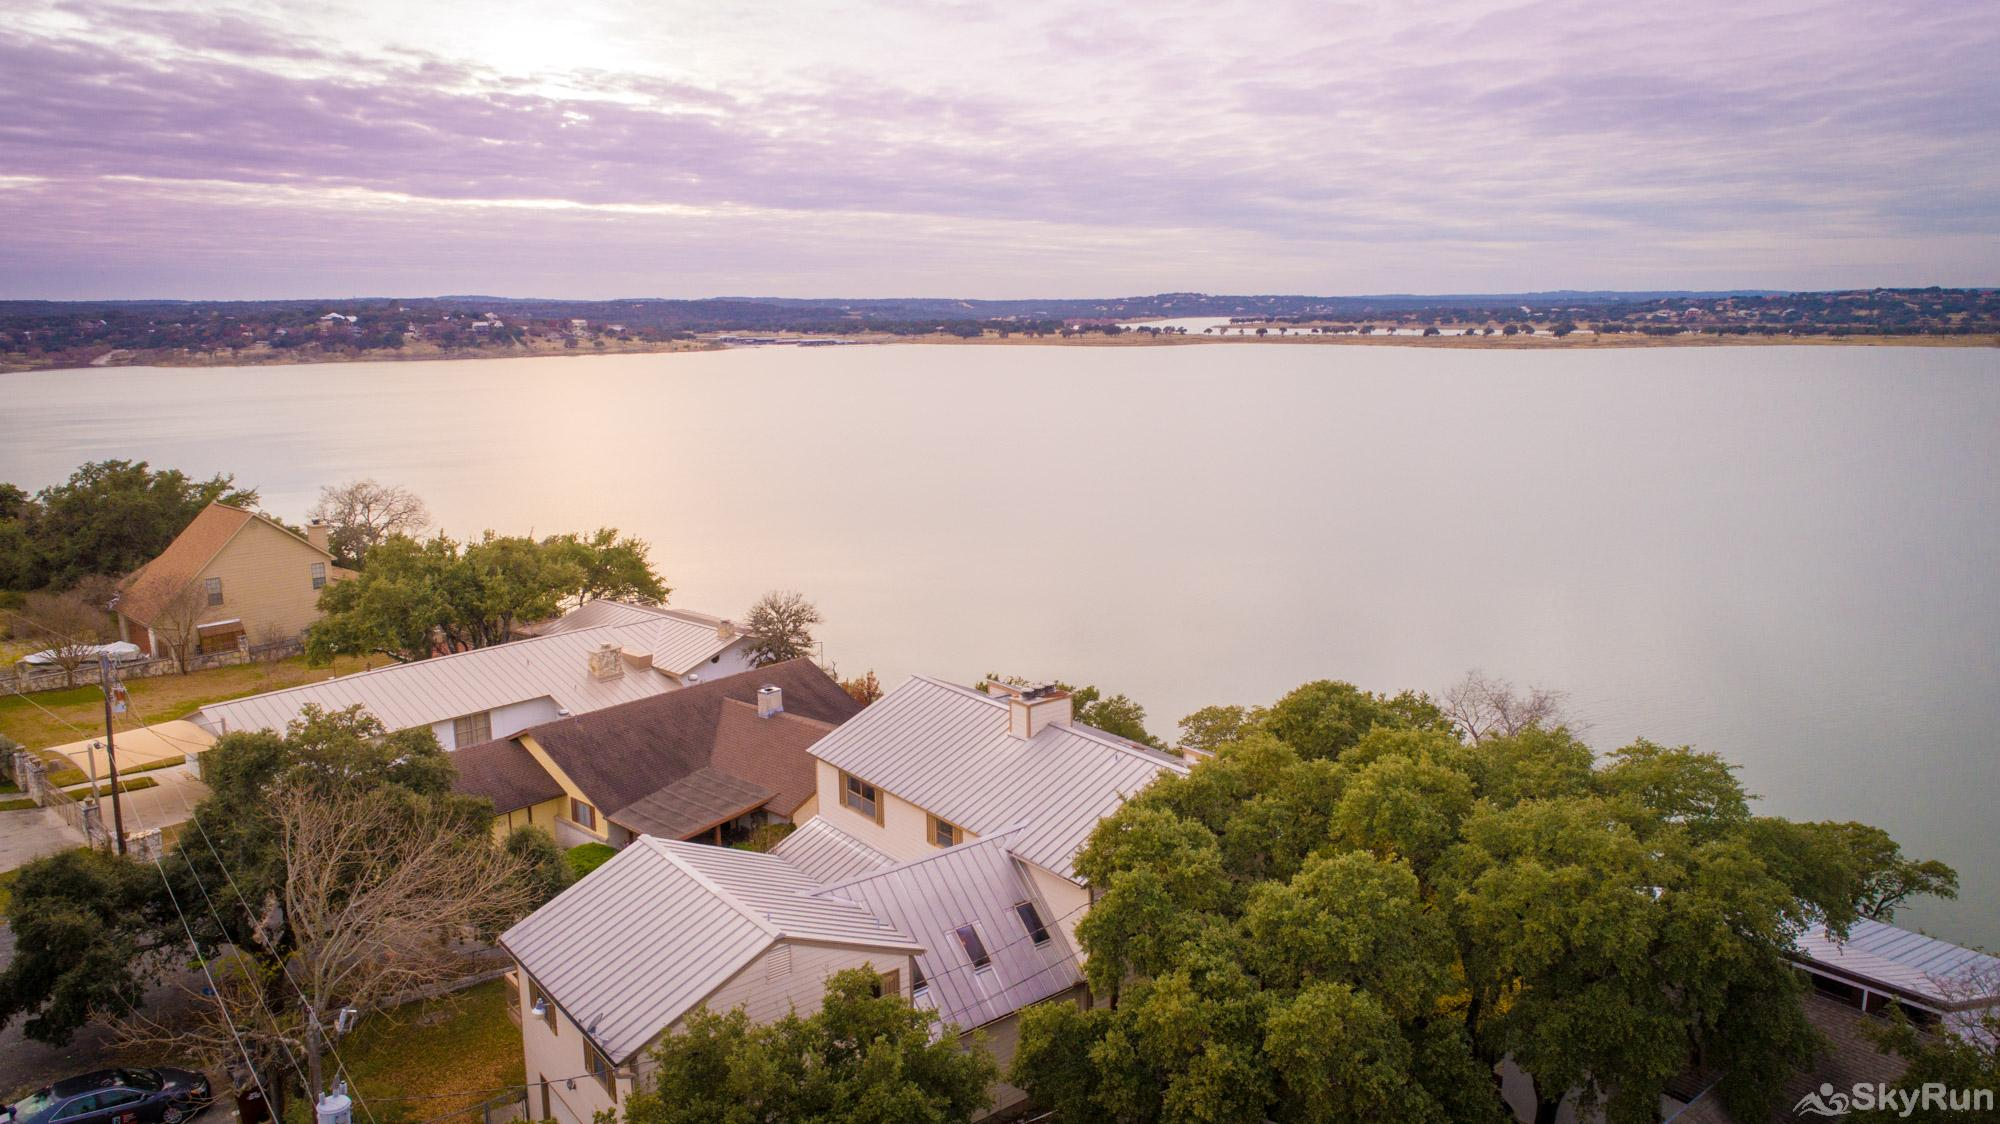 WATER'S EDGE RETREAT Aerial view from high above the home